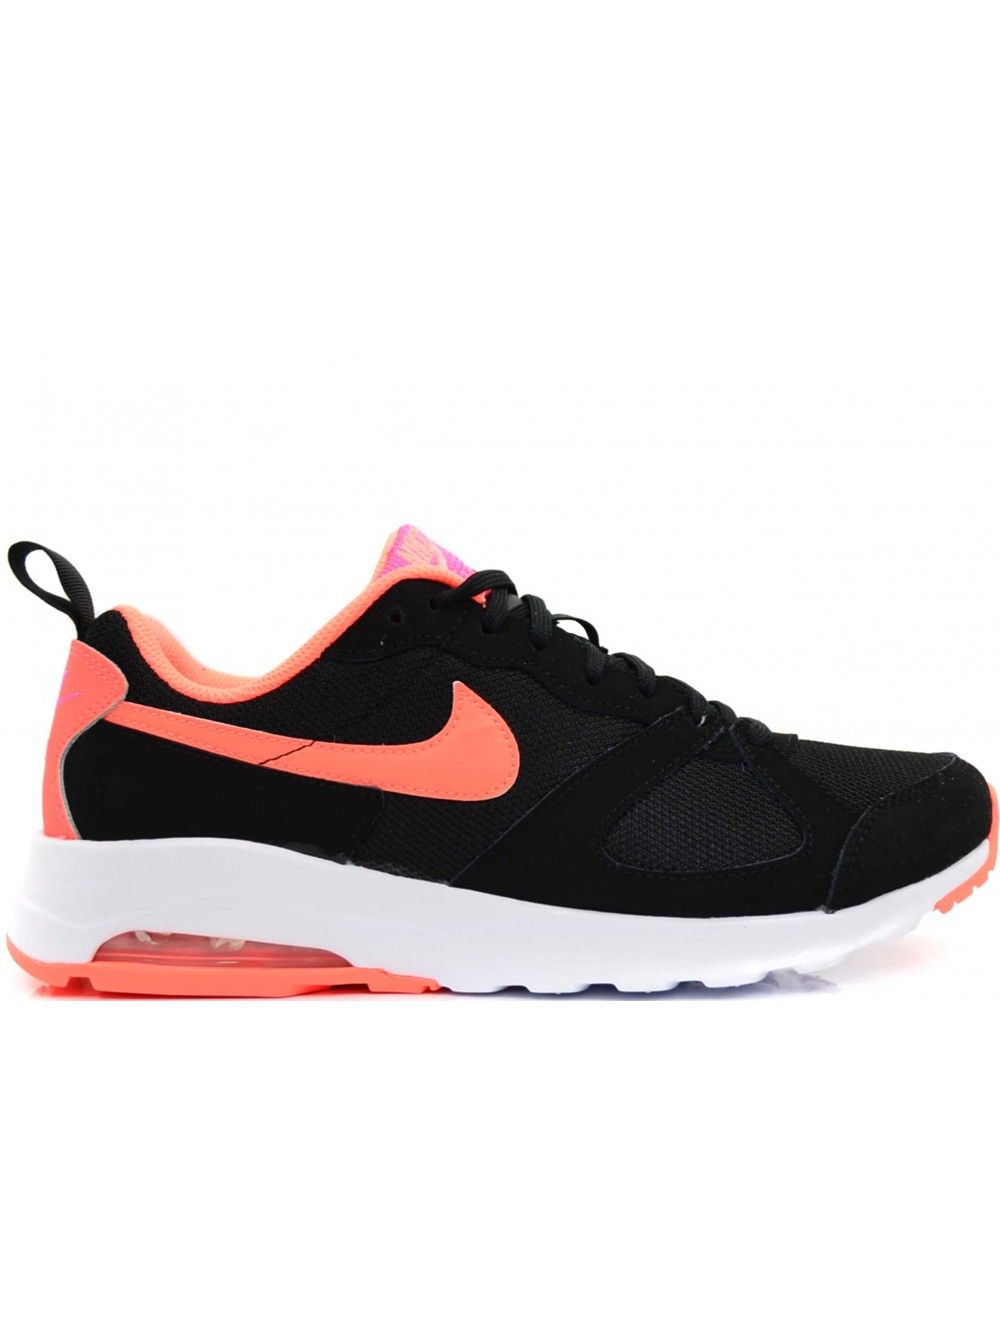 new arrival f7e46 0875a NIKE AIR MAX MUSE DAMES SNEAKERS - ZWART PINK